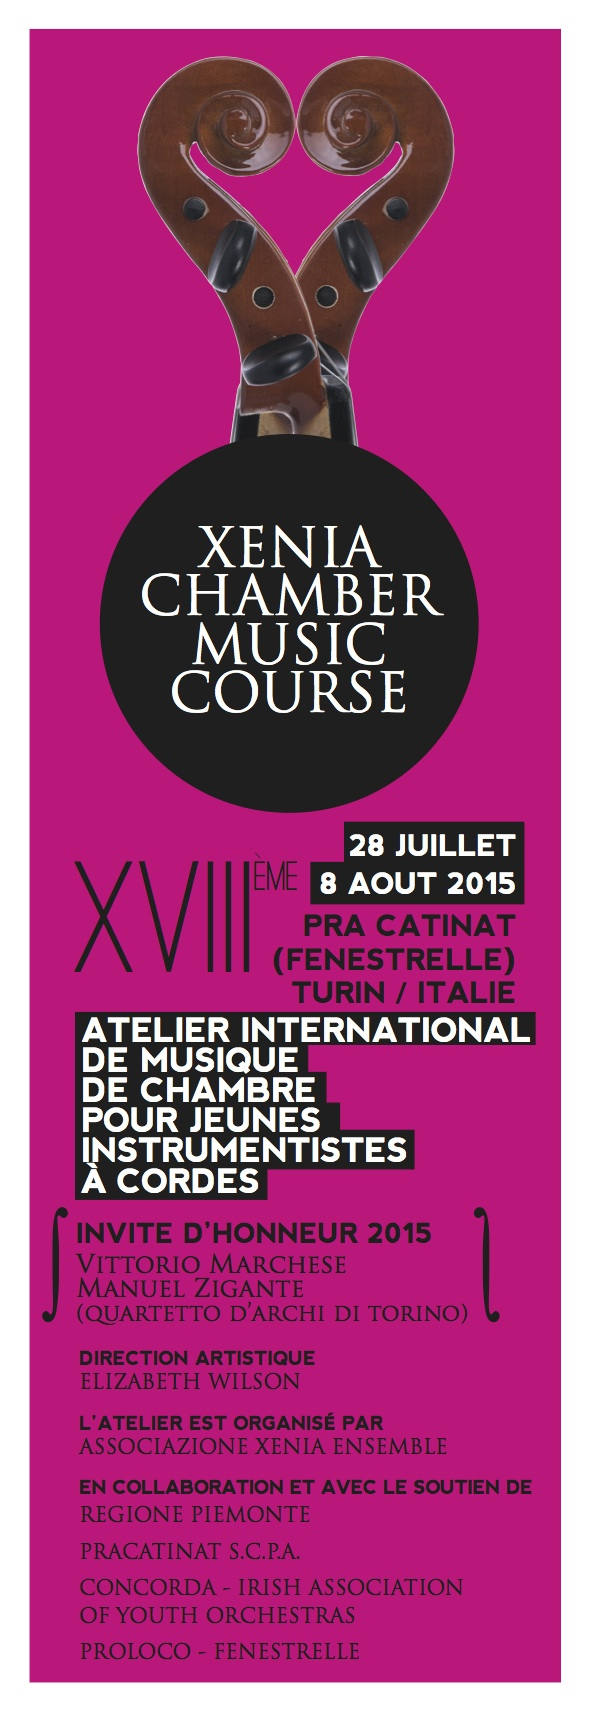 fr_XENIA_CHAMBER_MUSIC_COURSE_2015